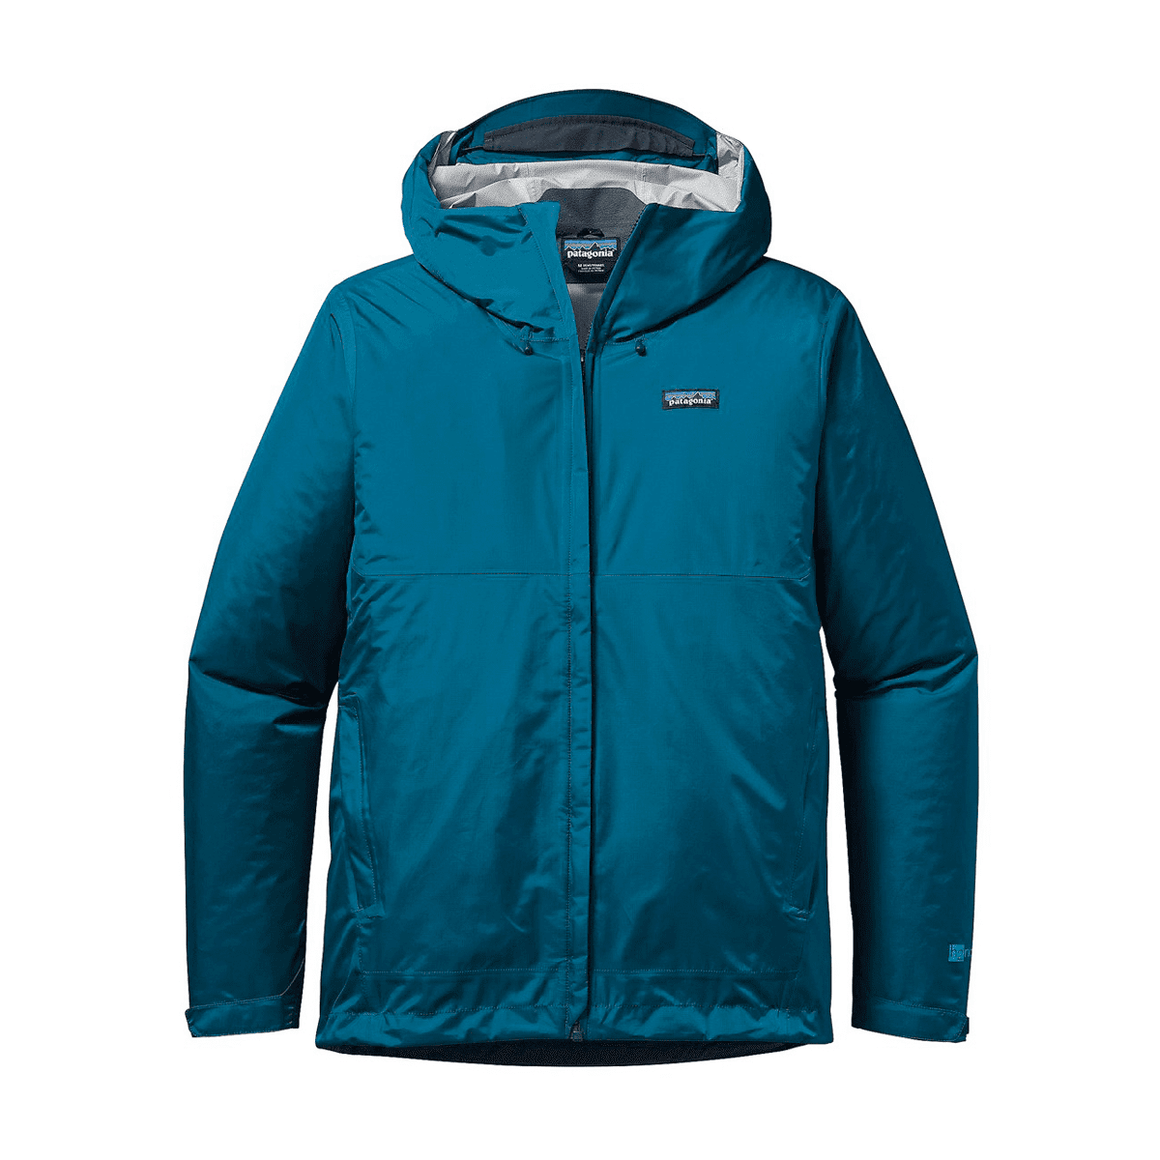 Torrentshell Jacket - Big Sur Blue